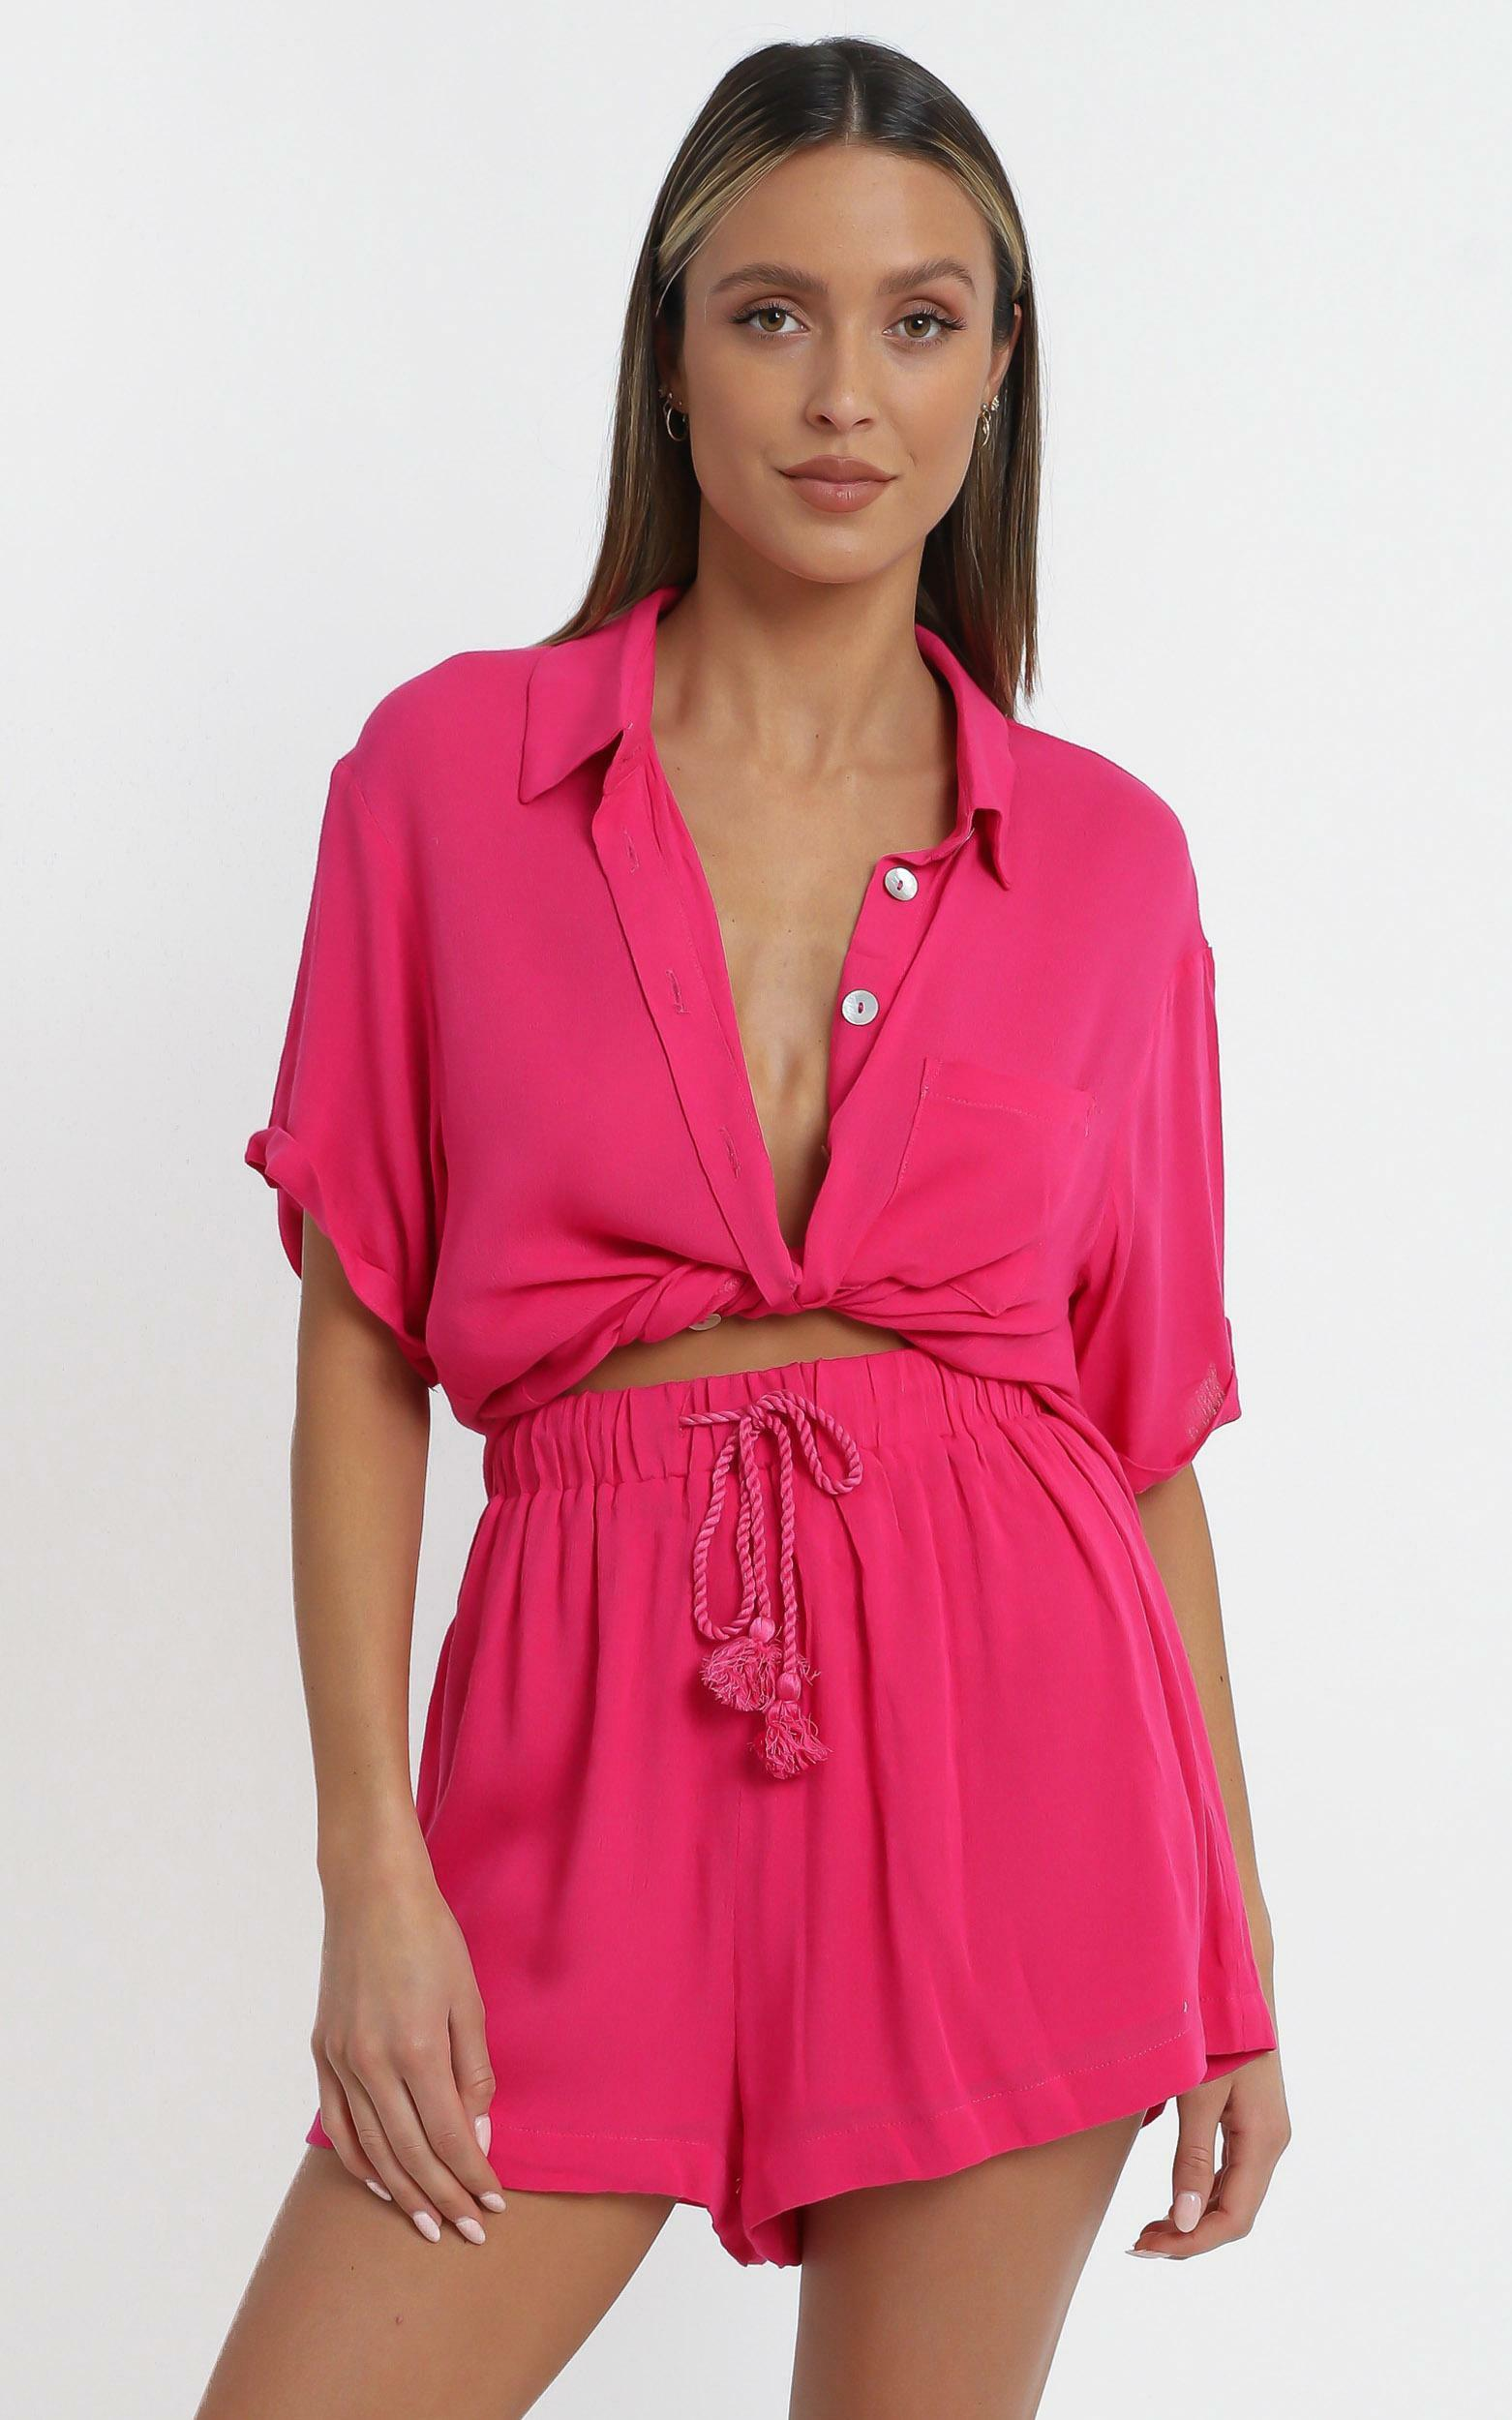 Jubilee Two Piece Set in Hot Pink - 14 (XL), Pink, hi-res image number null